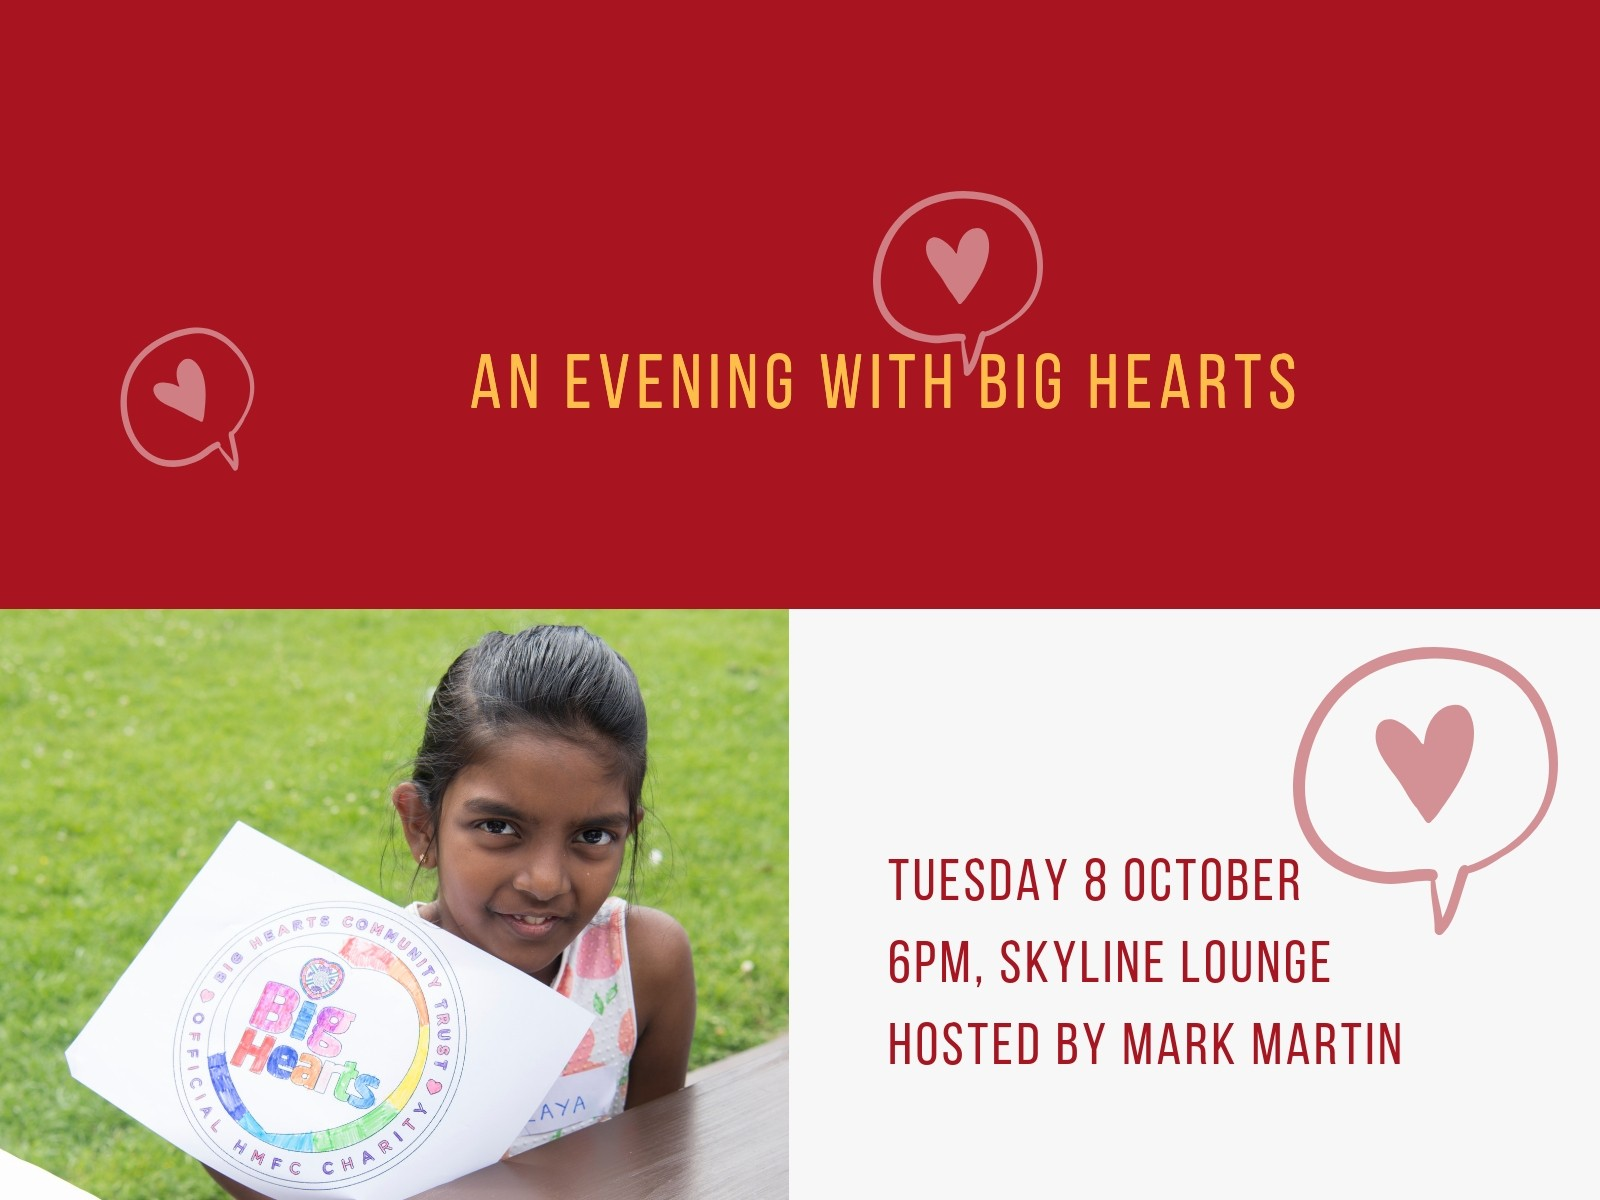 » An evening with Big Hearts: Come & join us on 8th October